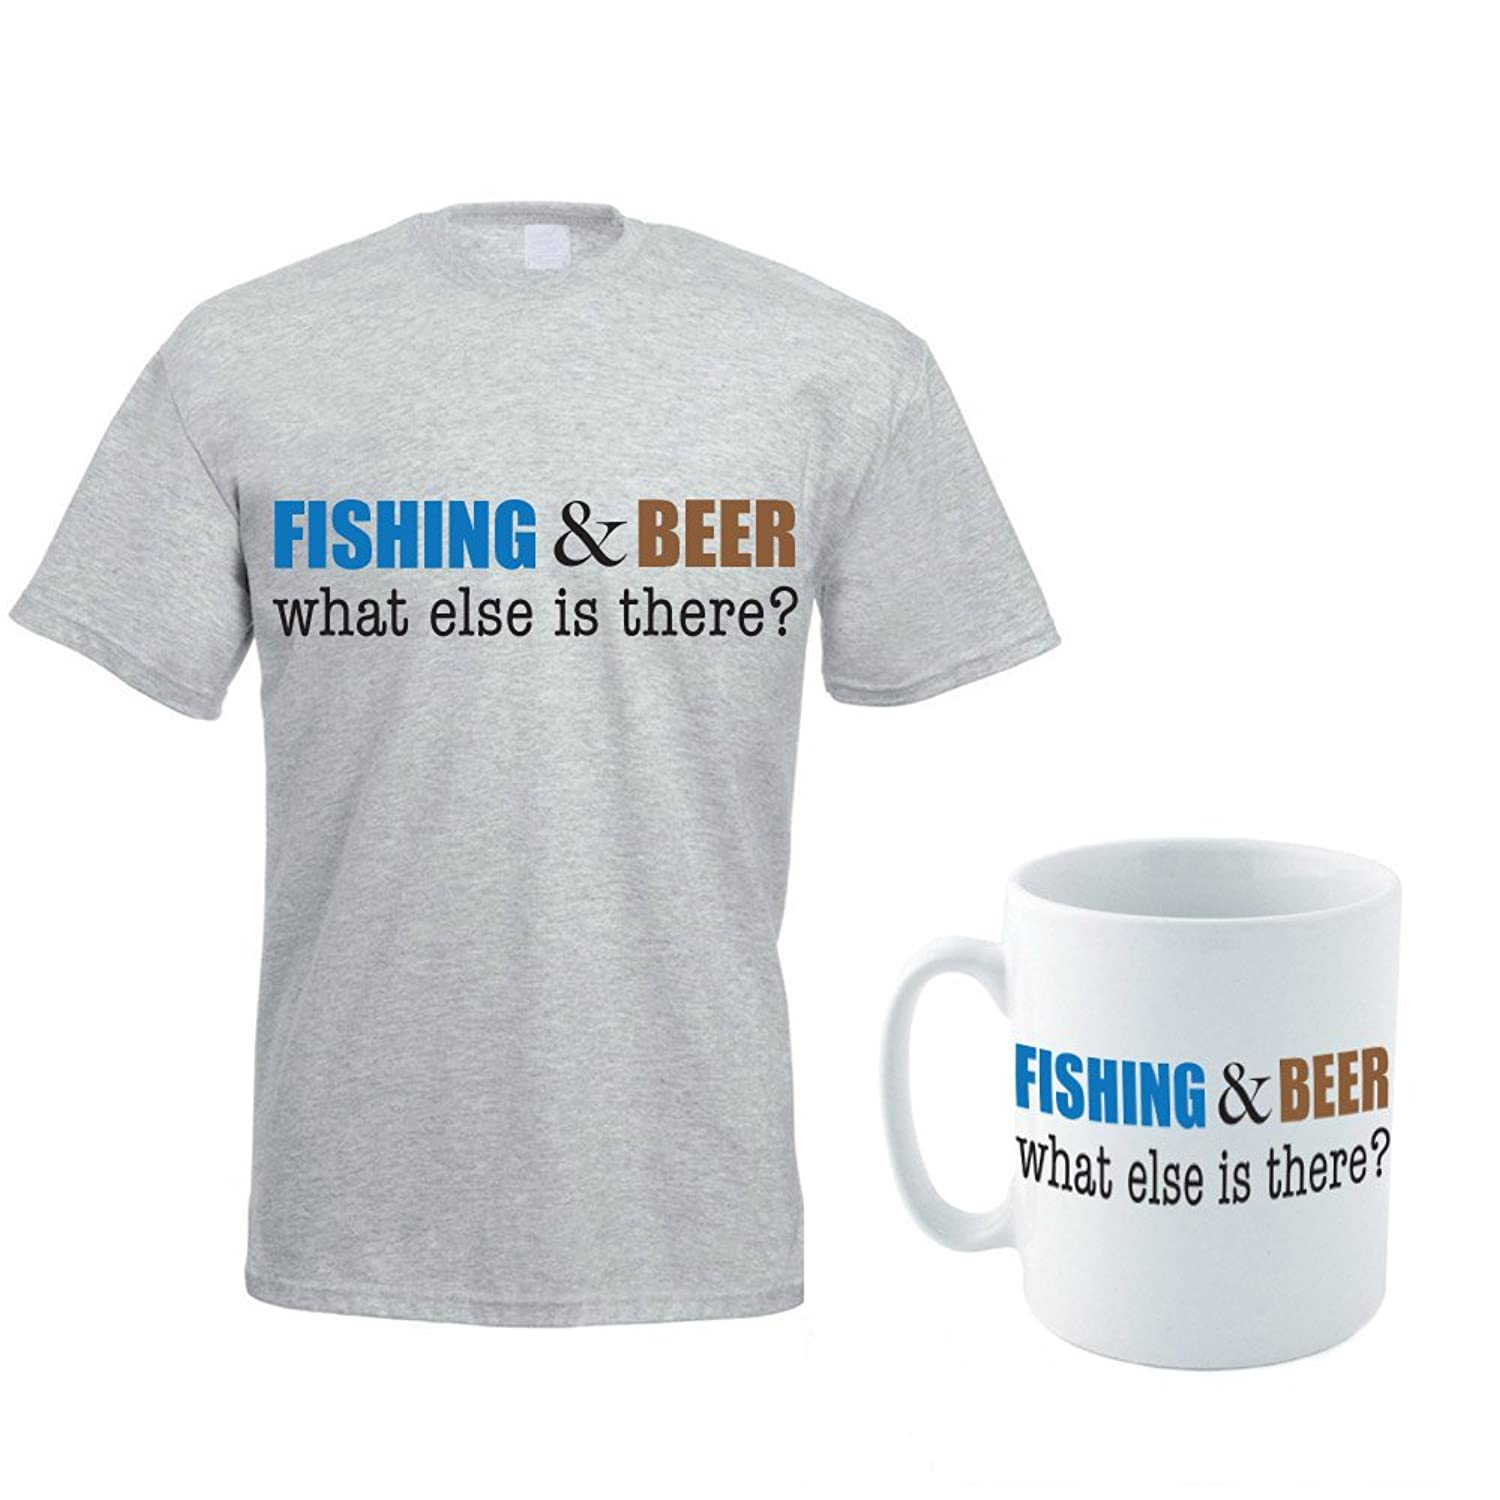 FISHING & BEER WHAT ELSE IS THERE? - Fish / Bait / Alcohol / Funny Themed Men's T-Shirt and Ceramic Mug Set